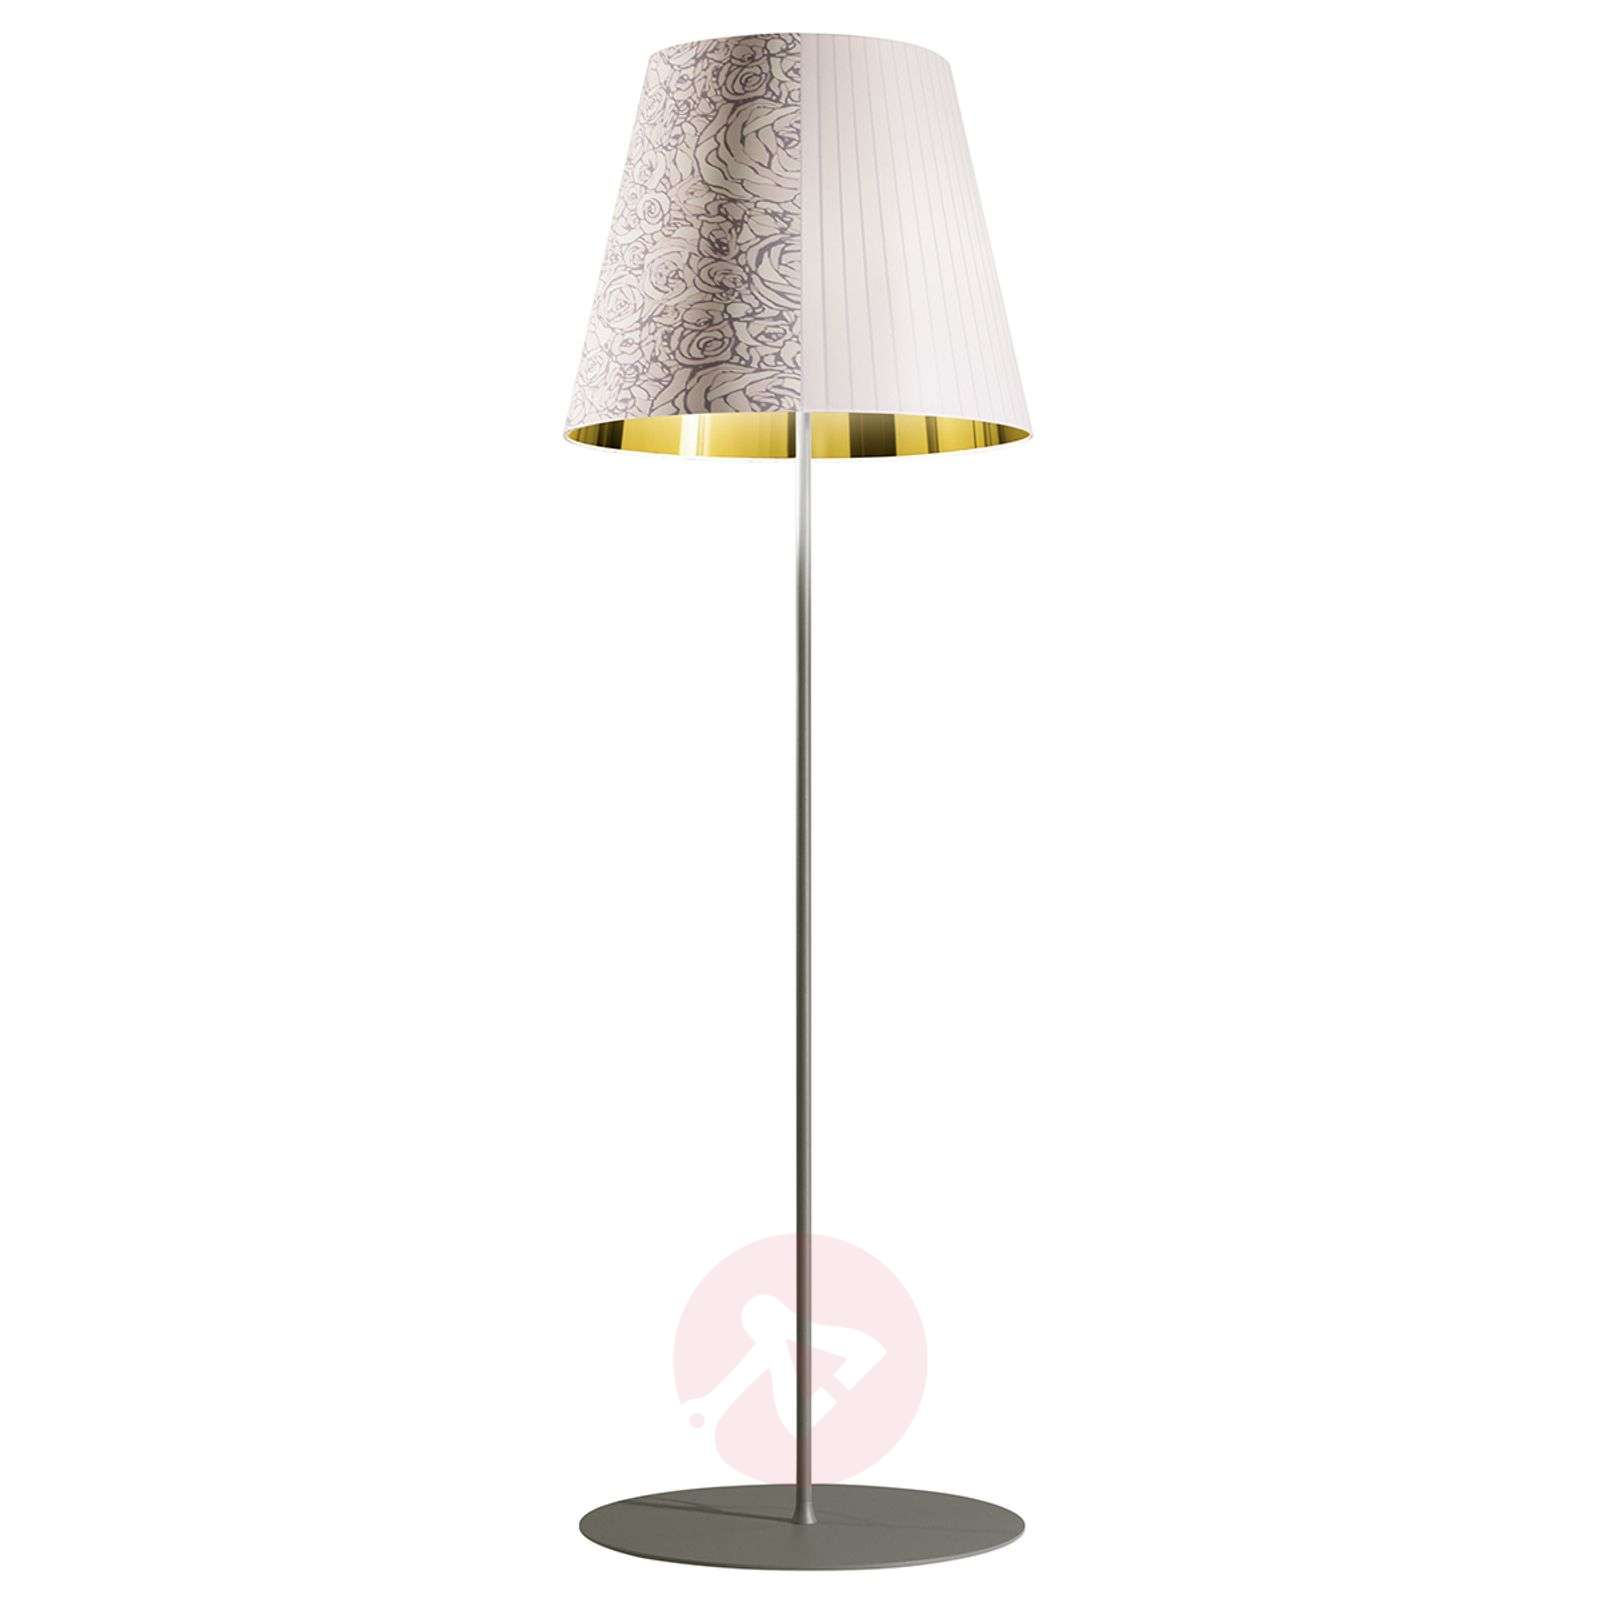 Decorative floor lamp melting pot in white gold 1088117 01